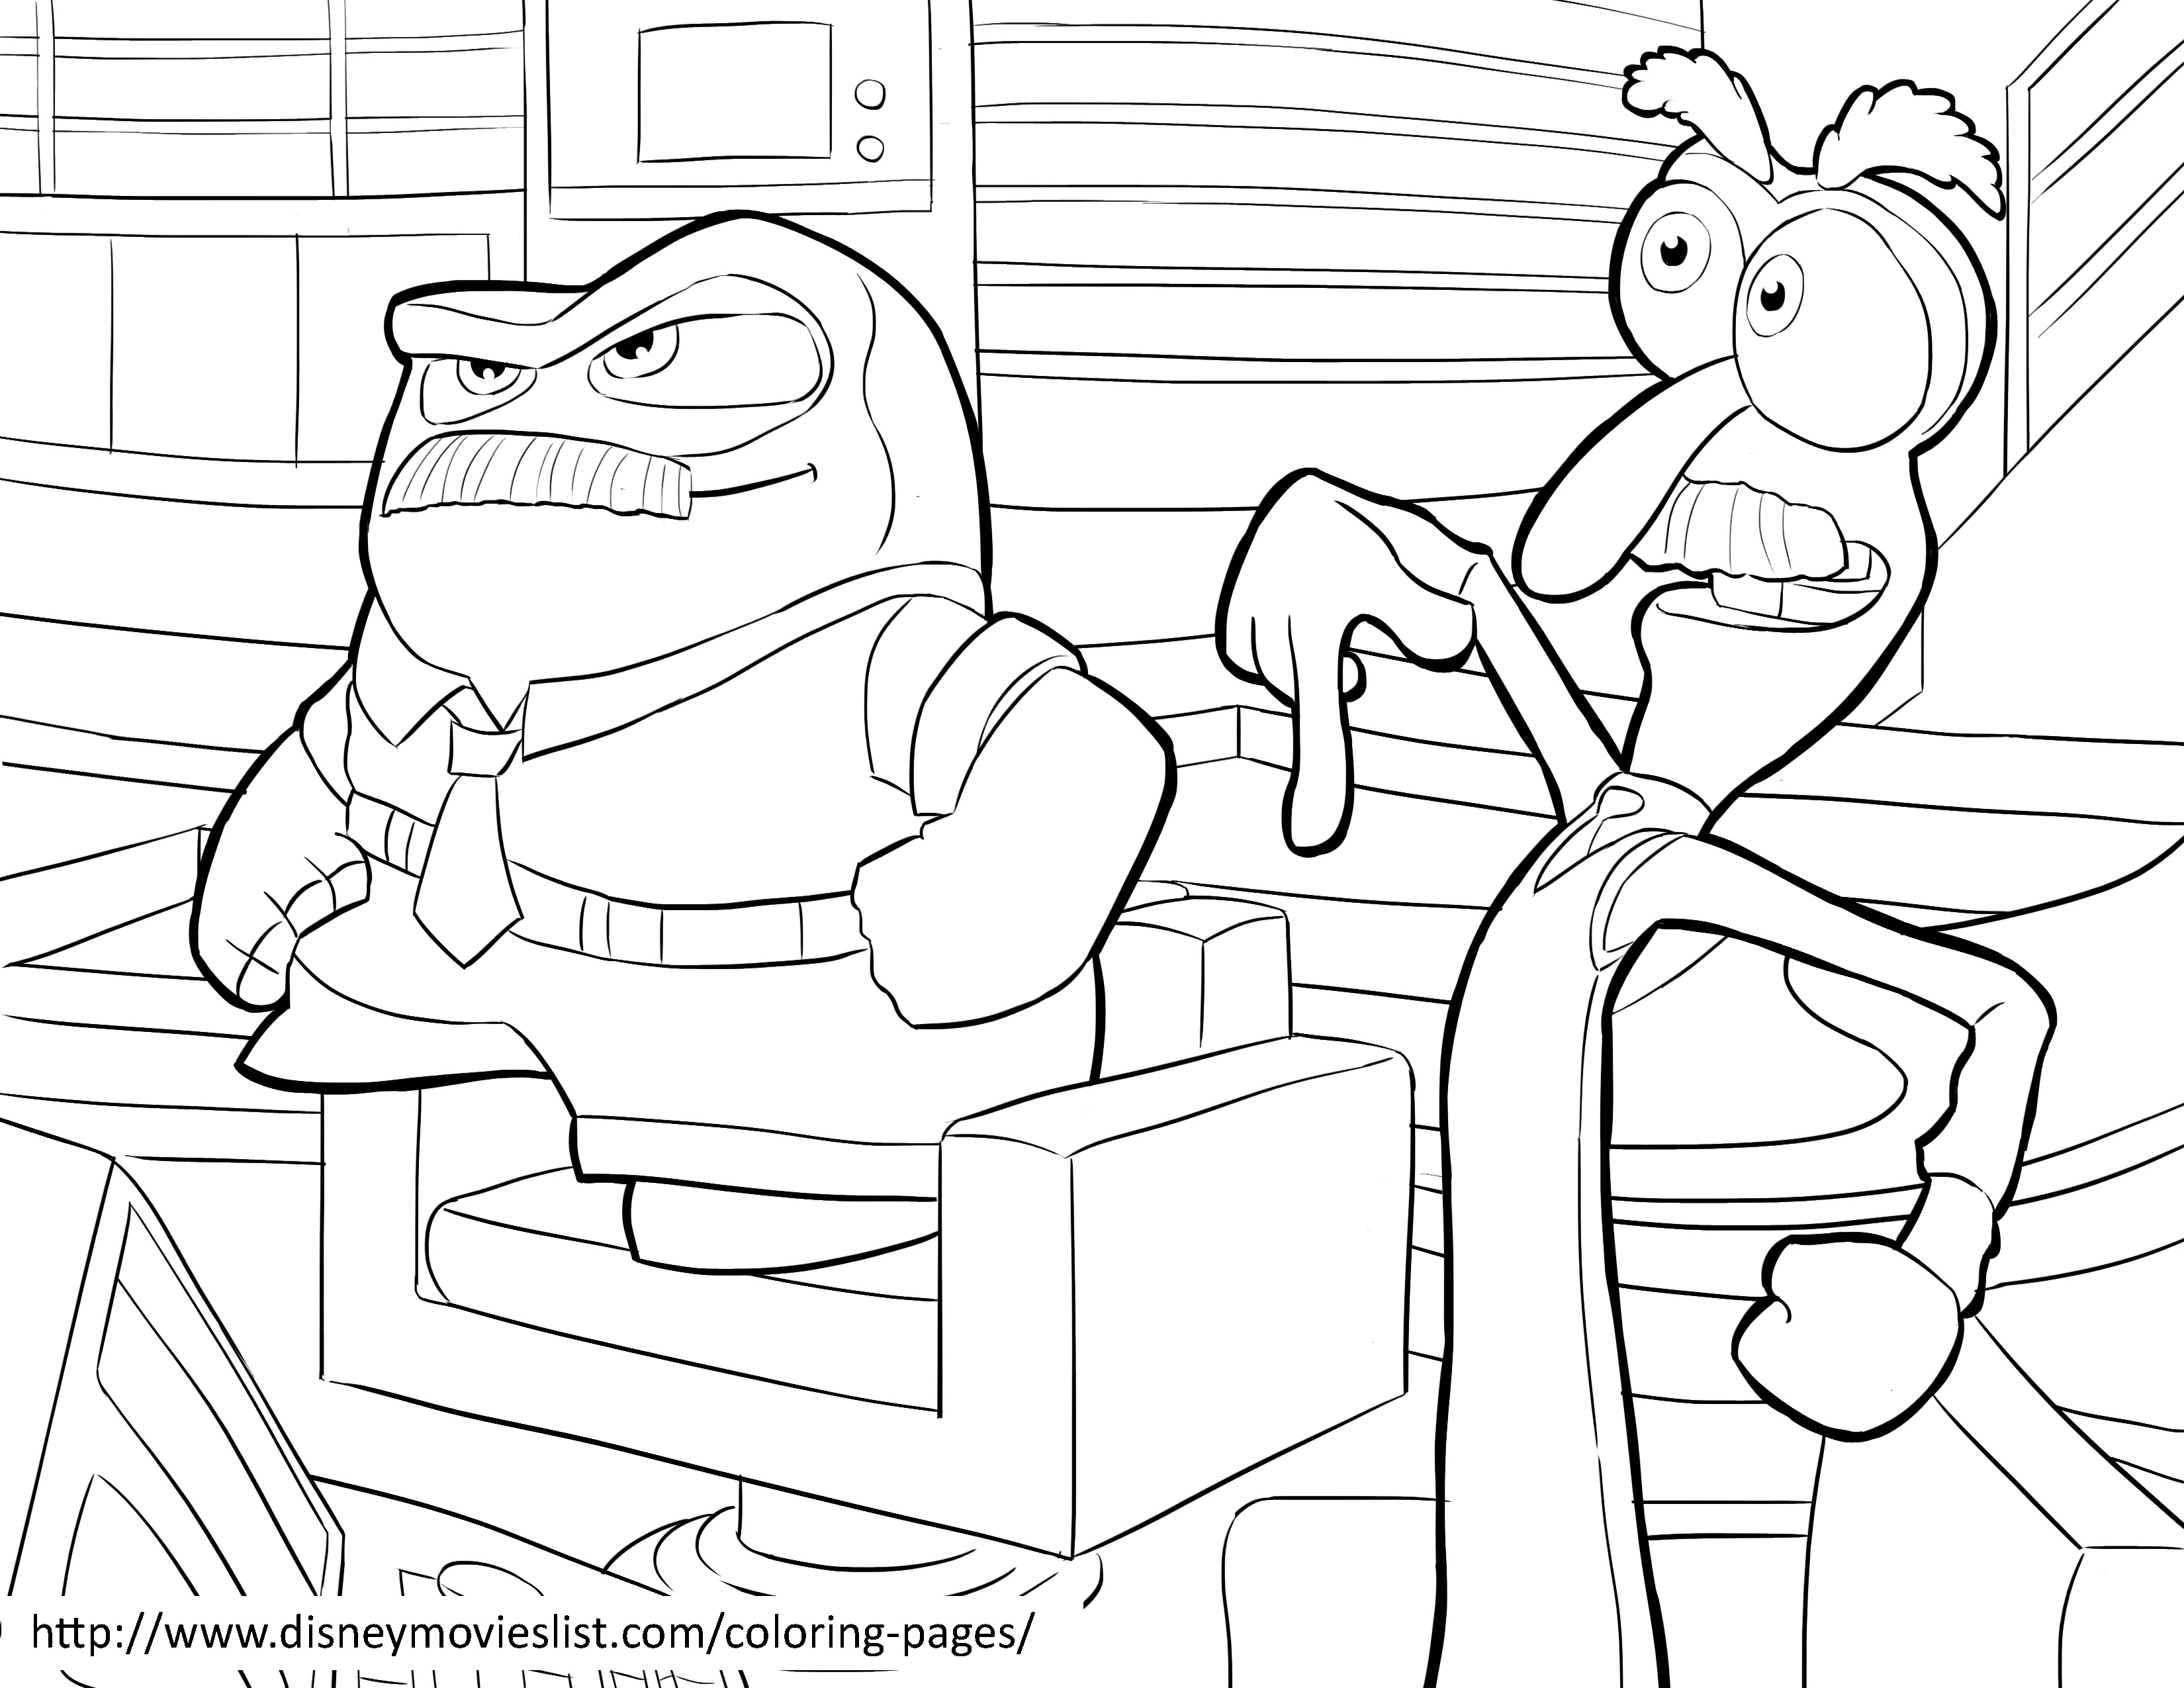 3300x2550 Disgust Coloring Page Joy Pages Inside Out Style